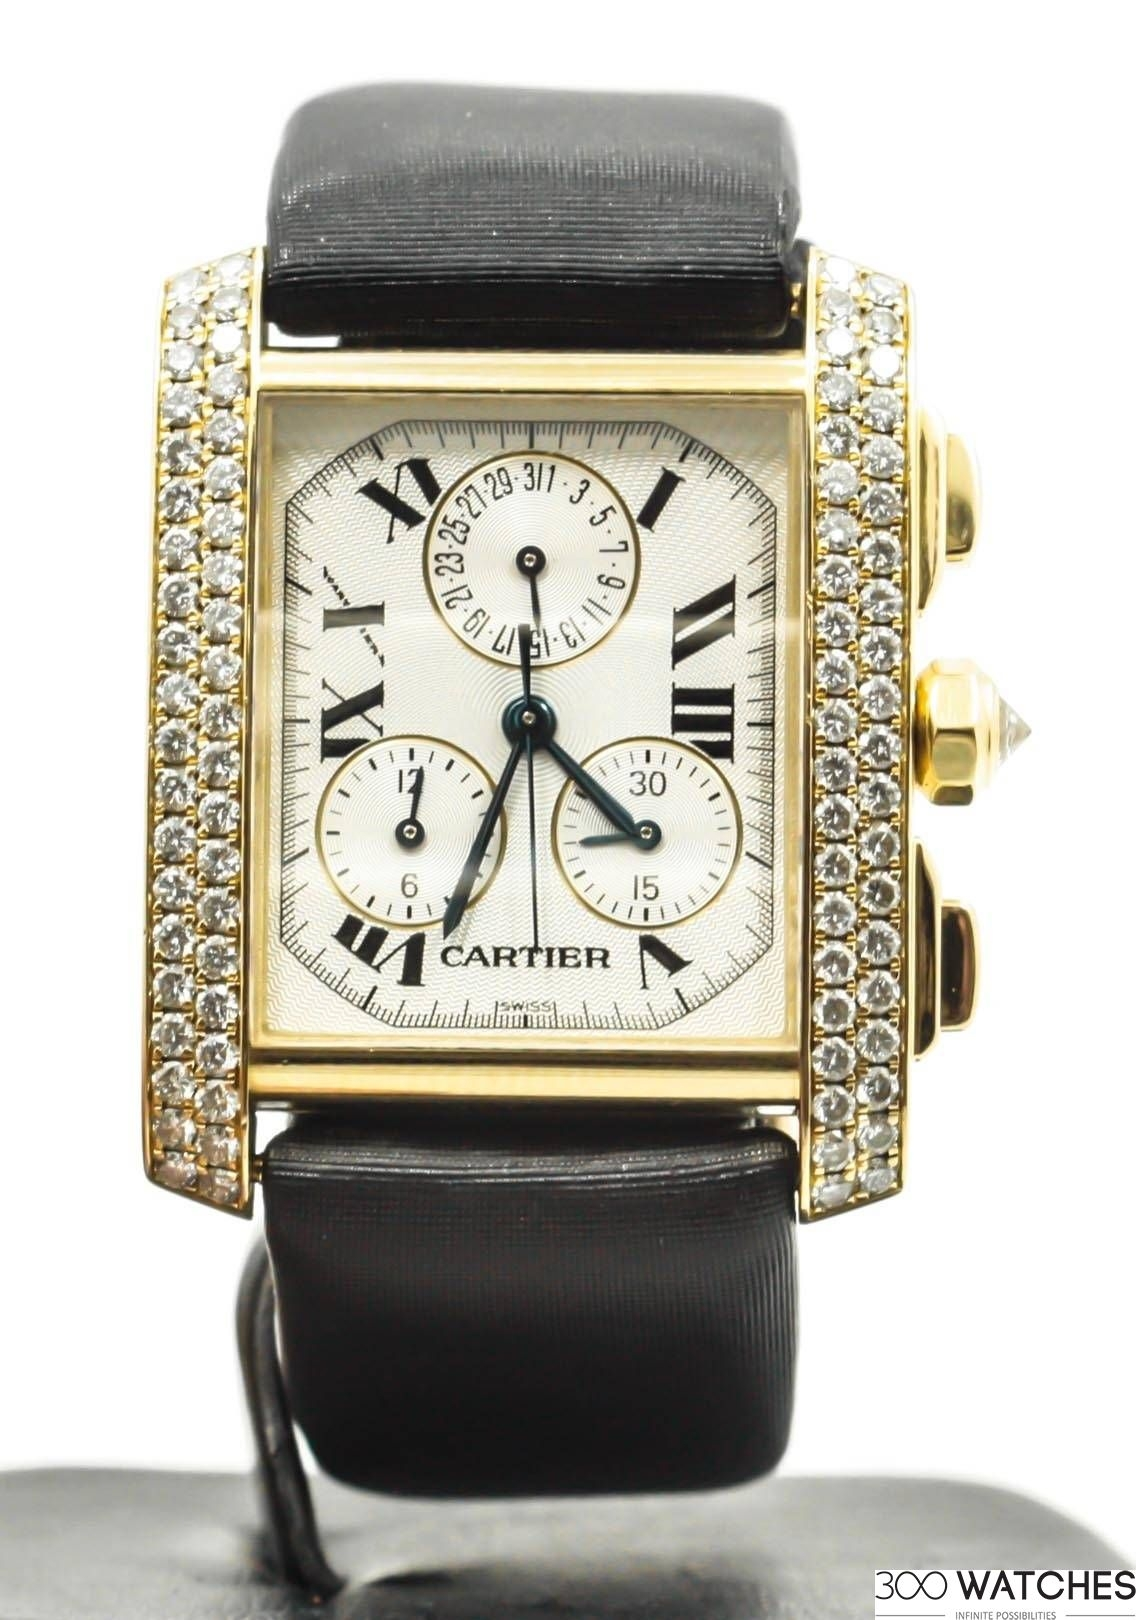 Cartier Watches Cartier Tank Francaise 1830 Chronograph 18k Yellow Gold Quartz Watch